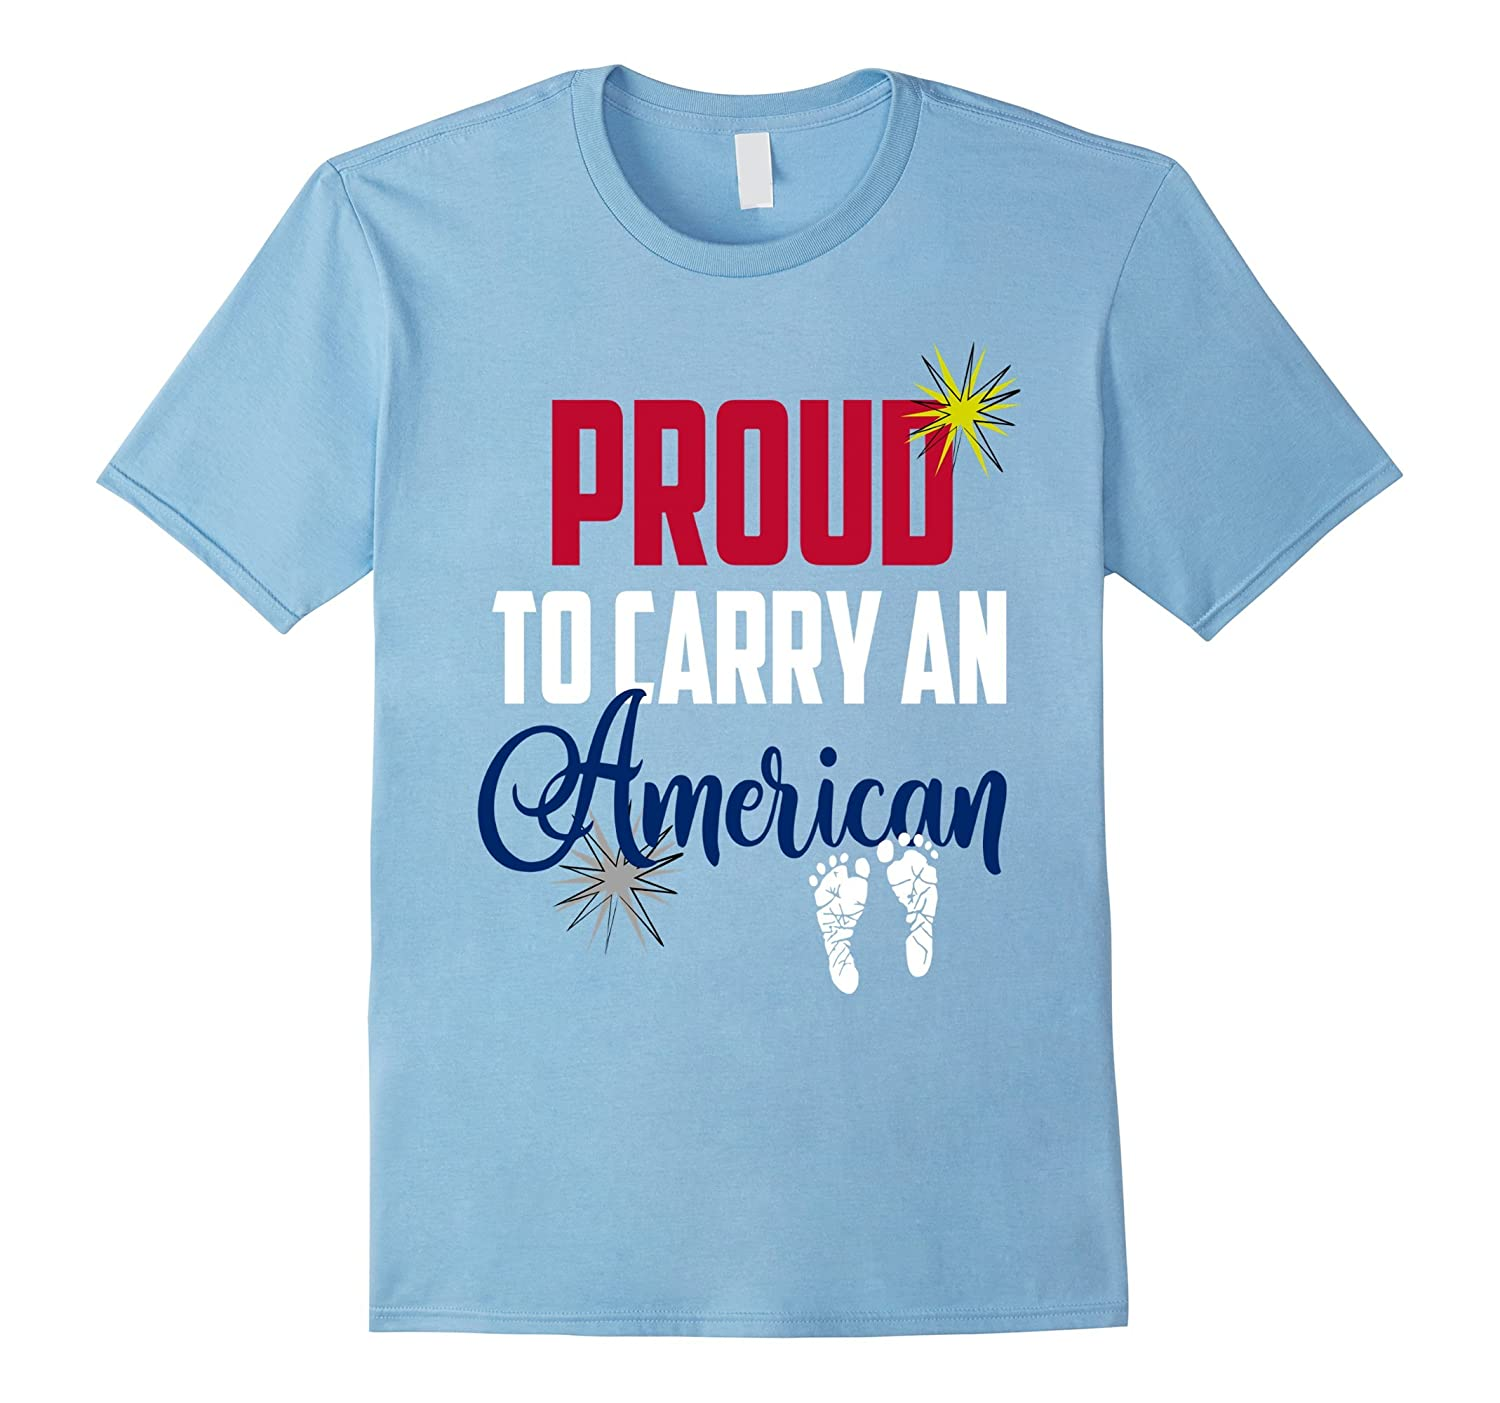 4th of July Pregnancy Shirt Pregnant Proud To Carry American-PL